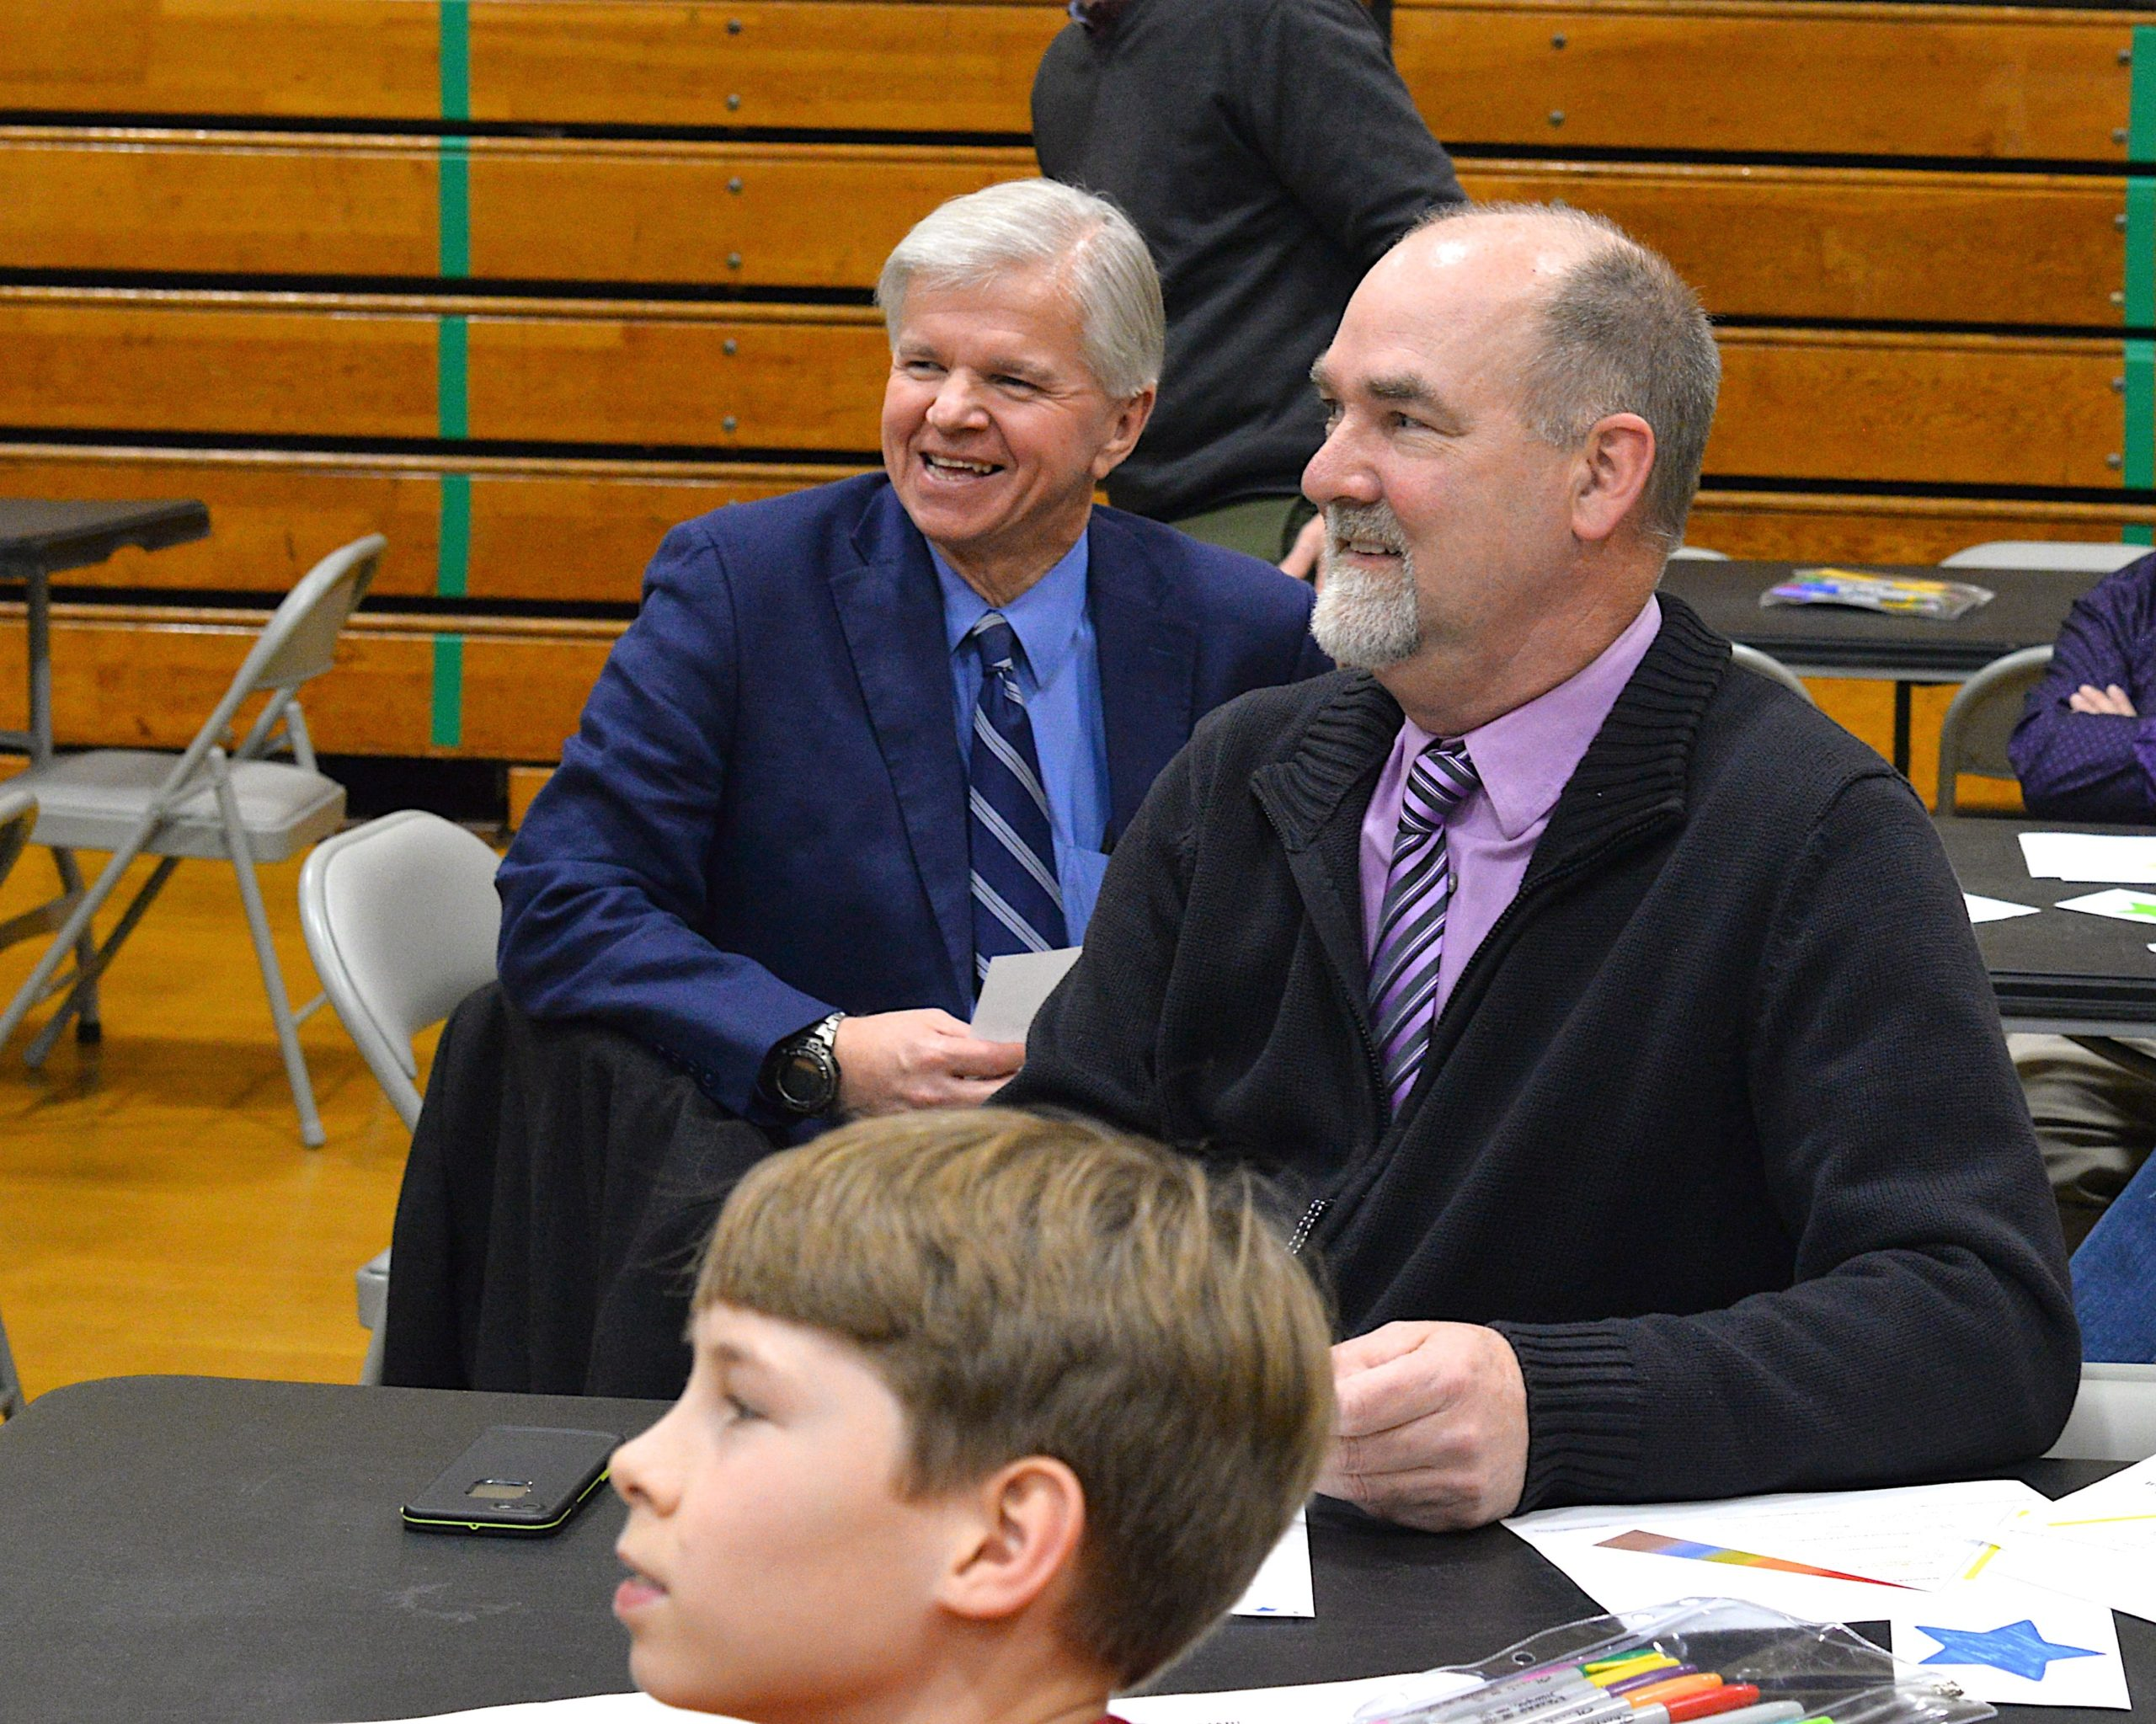 Assemblyman Fred W. Thiele Jr. and East Hampton Town Supervisor Peter Van Scoyoc listen to a presentation at the Springs School Diversity Institute on Friday. KYRIL BROMLEY